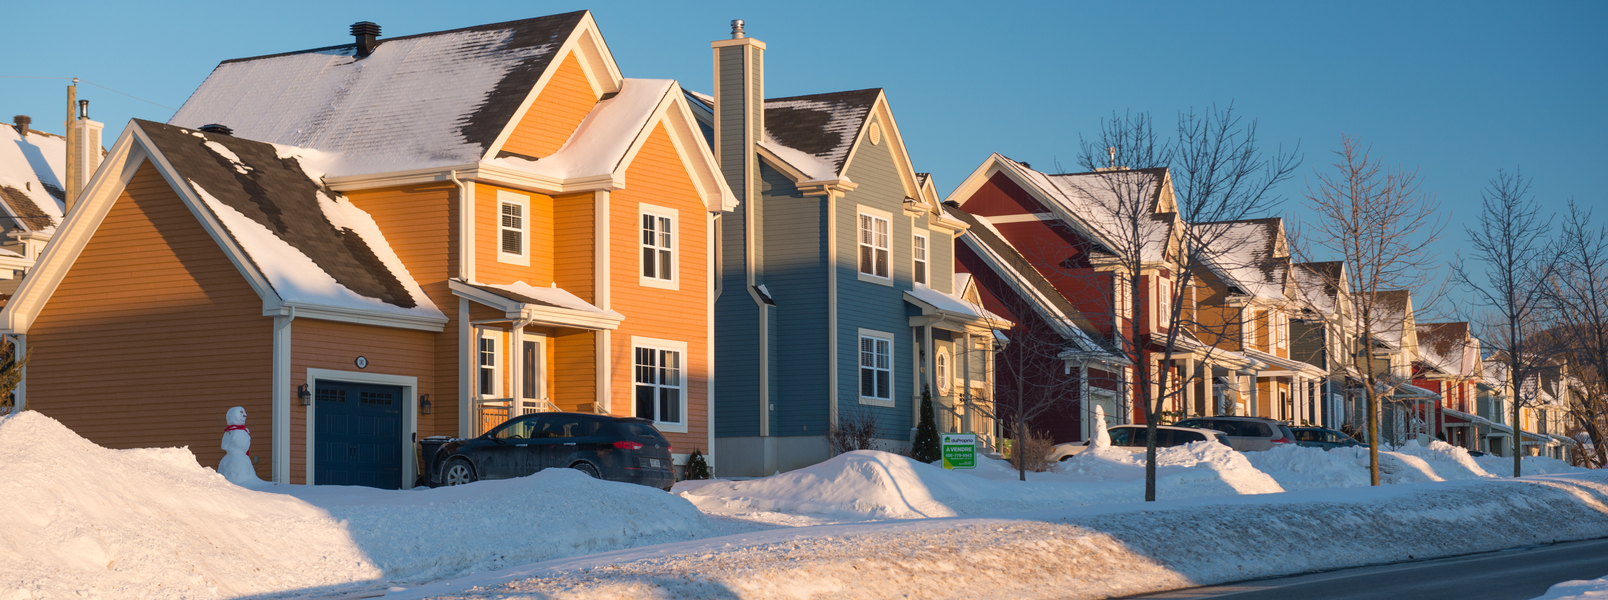 5 Advantages To Renovating During The Winter